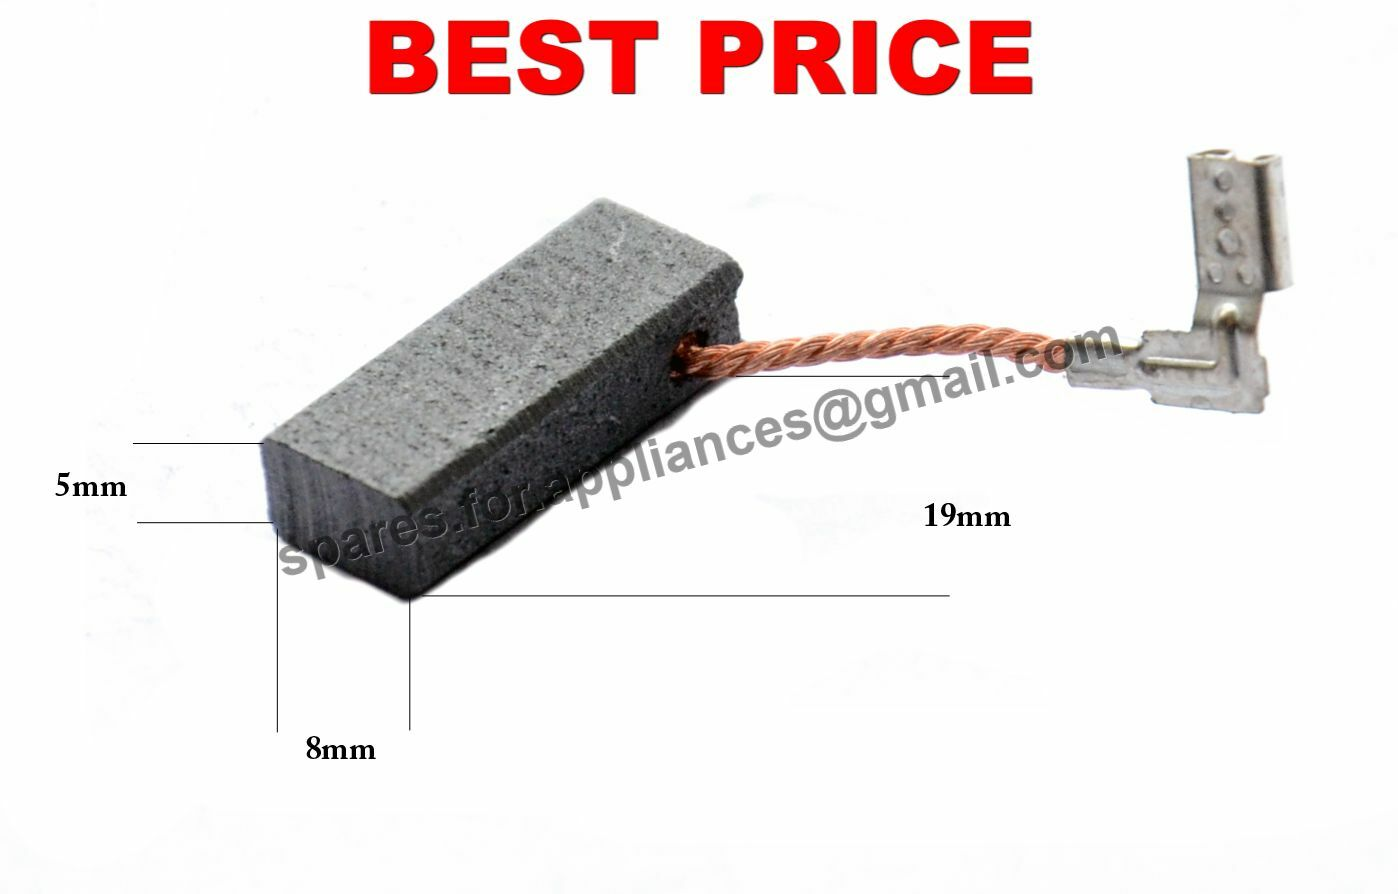 Carbon Brush 1617000525  for Bosch GBH 3-28 DFR 3-28 DRE SPIT 332 Rotary Hammer